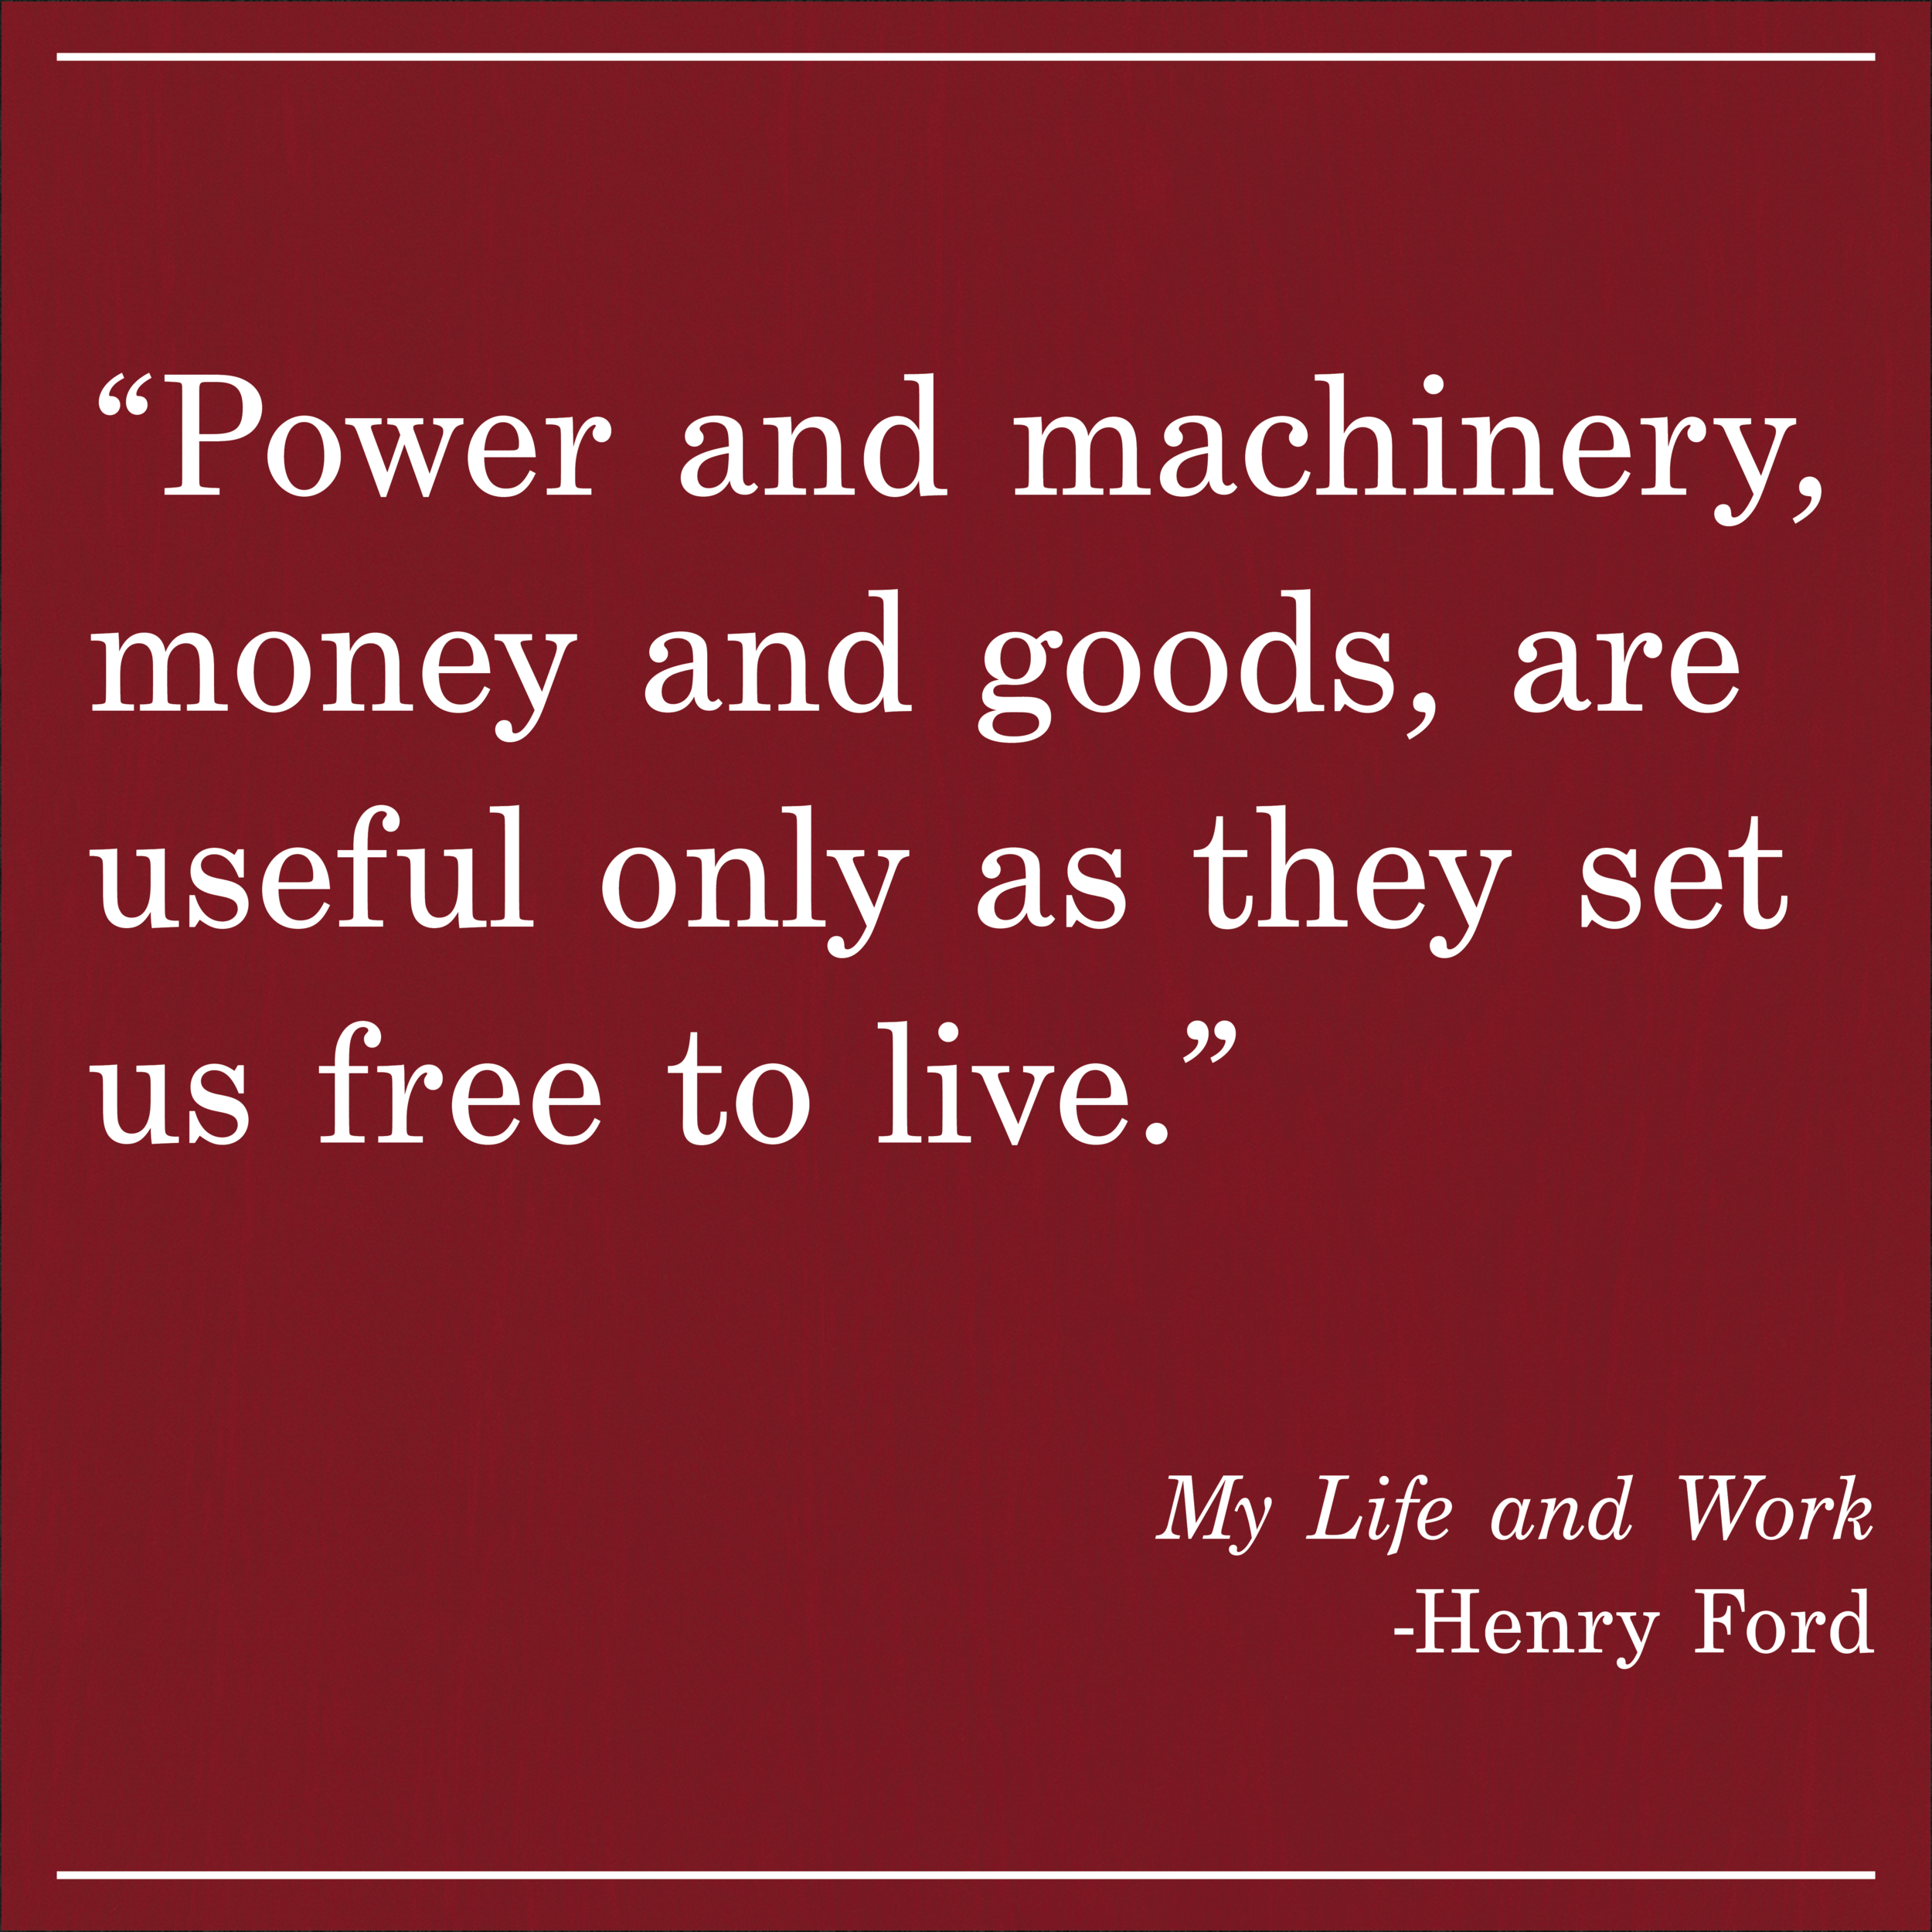 Daily Quote My Life and Work Henry Ford